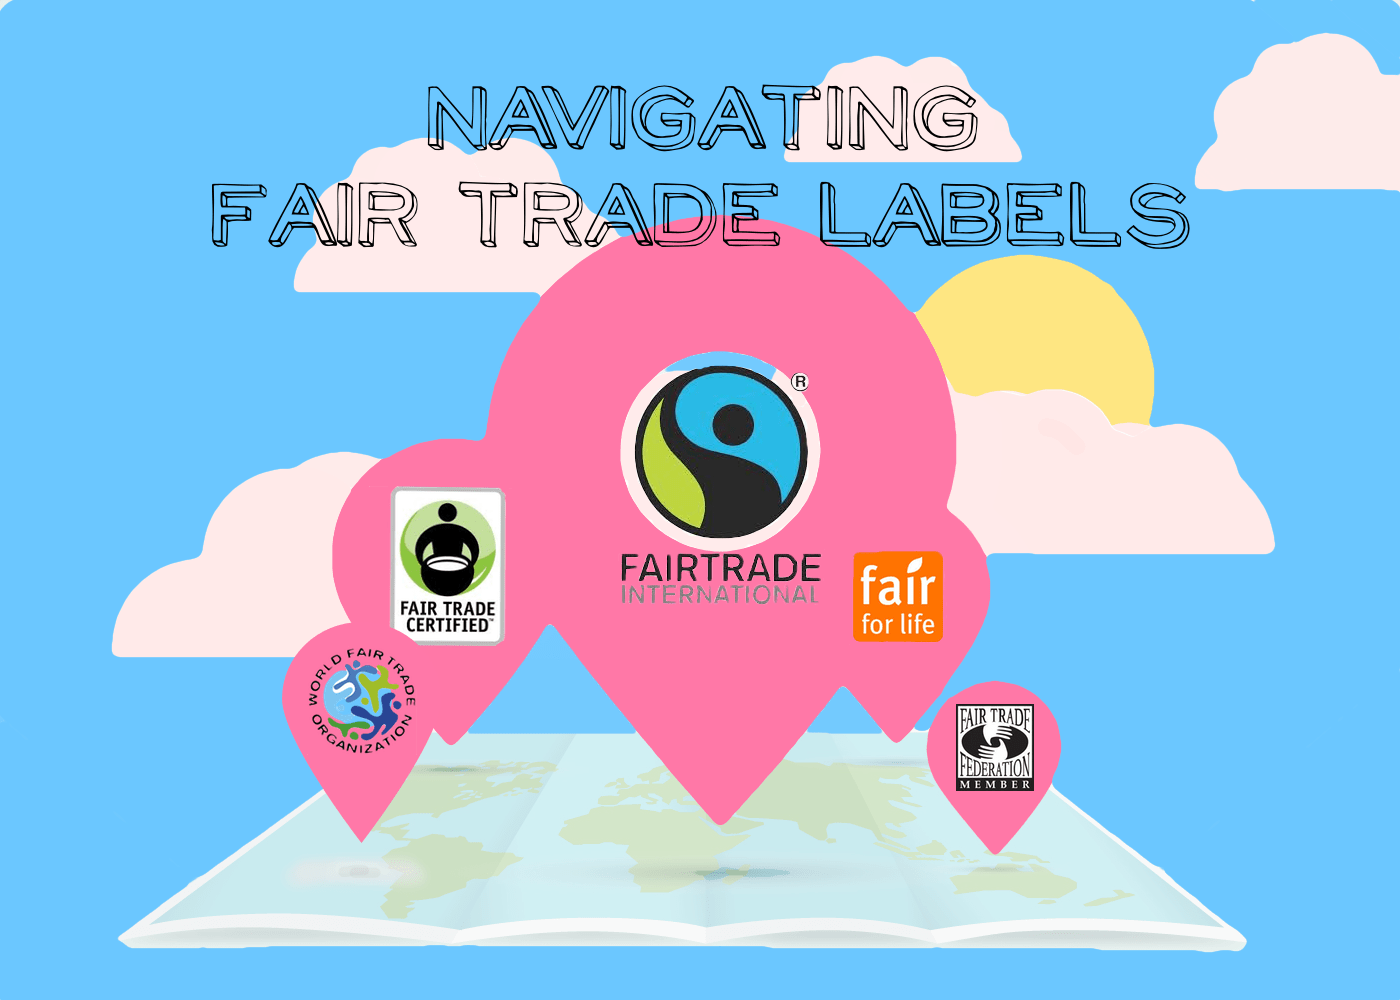 fair trade labels, fair trade logos